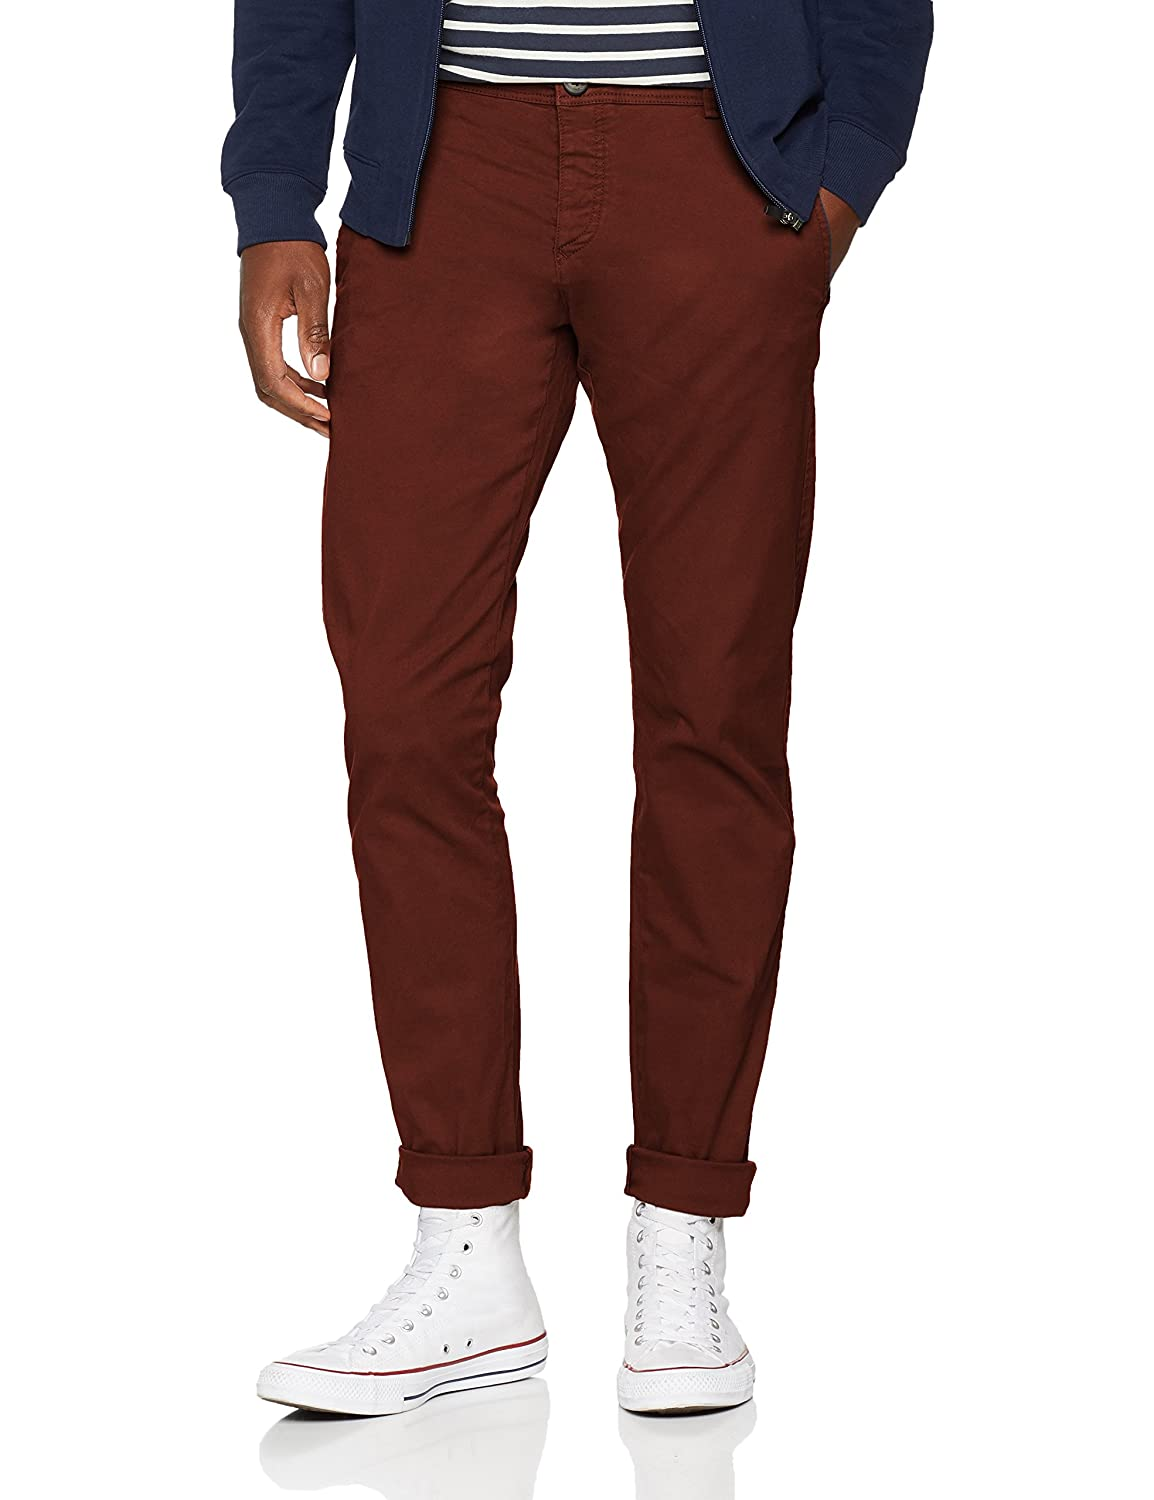 SELECTED HOMME Slhskinny-Luca B. Chocolate Pants W Noos, Pantalones para Hombre